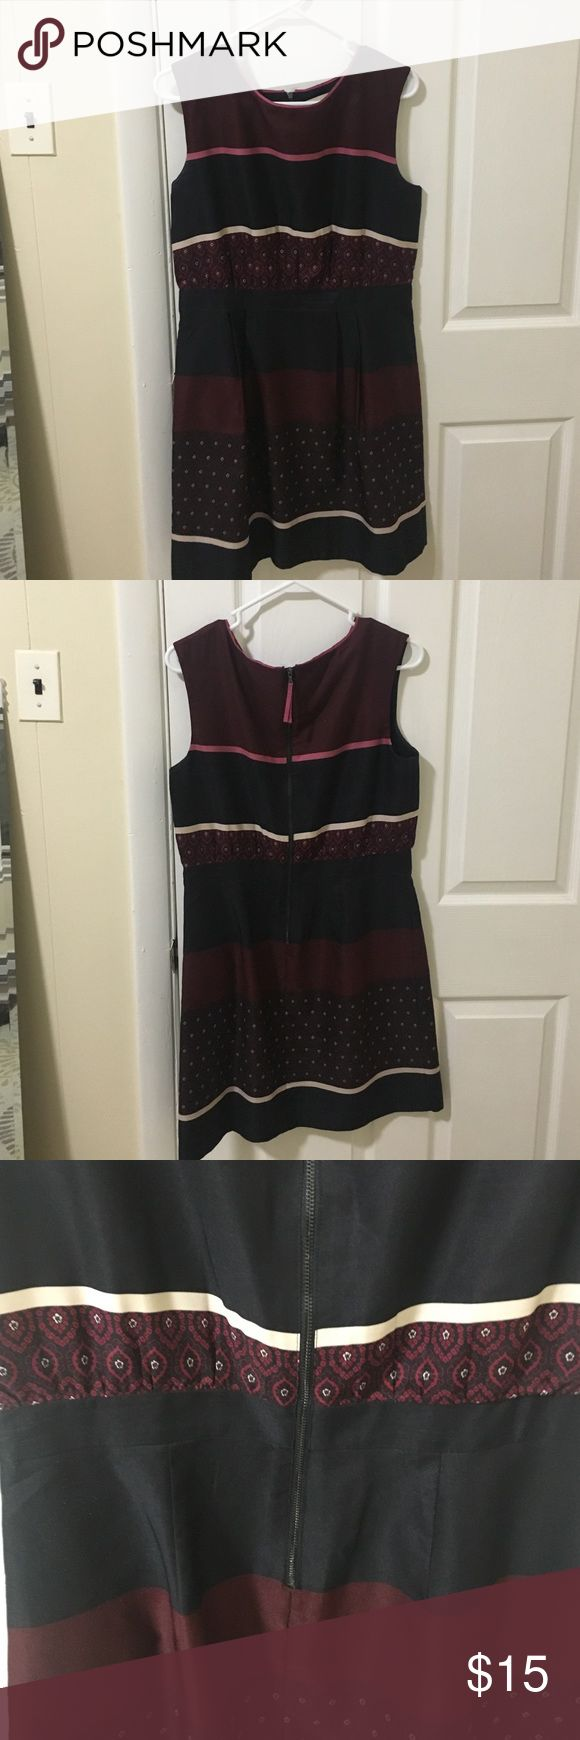 Maroon, navy, and cream Loft dress Loft dress that has an elastic waist band LOFT Dresses Mini